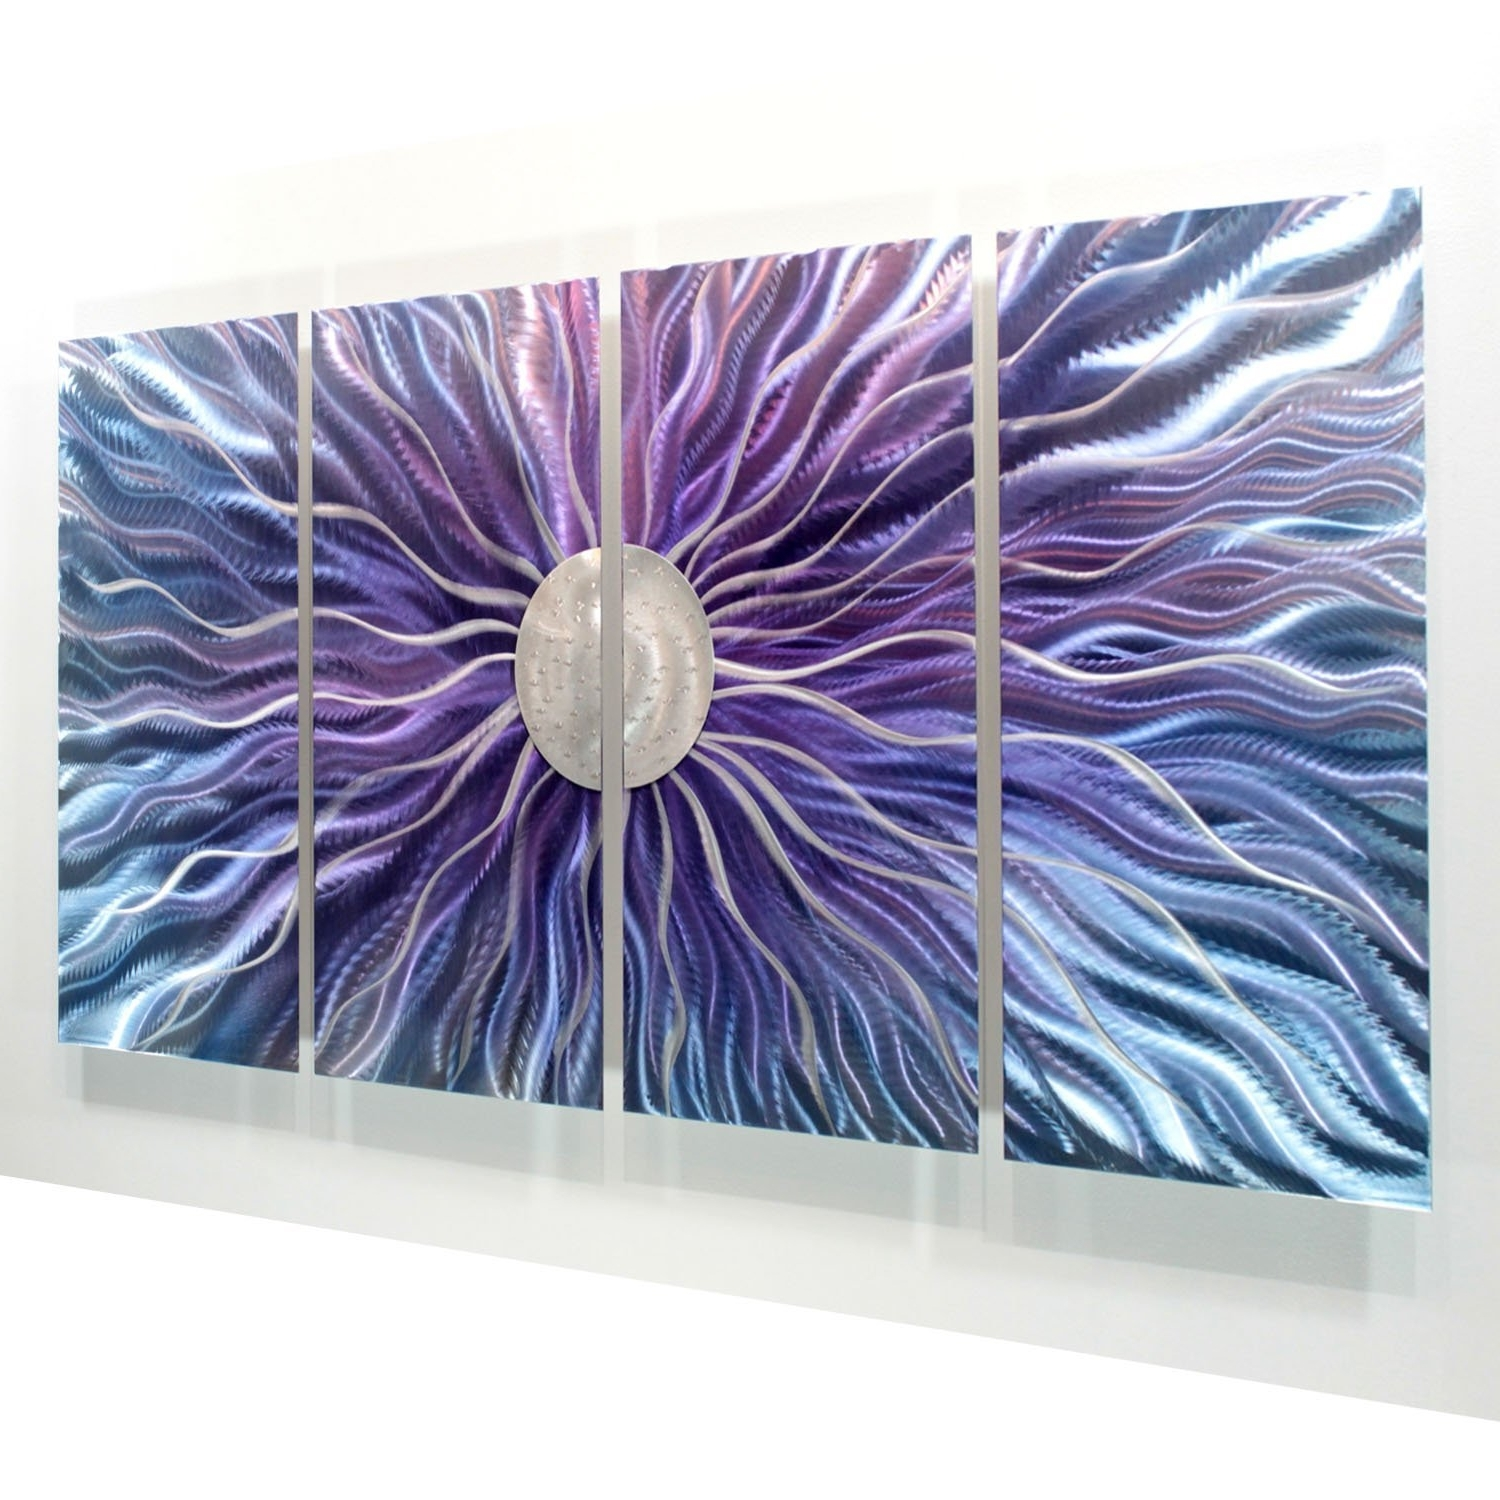 Amazon: Large Blue, Purple, And Silver Metal Wall Art Painting Inside Trendy Blue And Silver Wall Art (View 1 of 15)